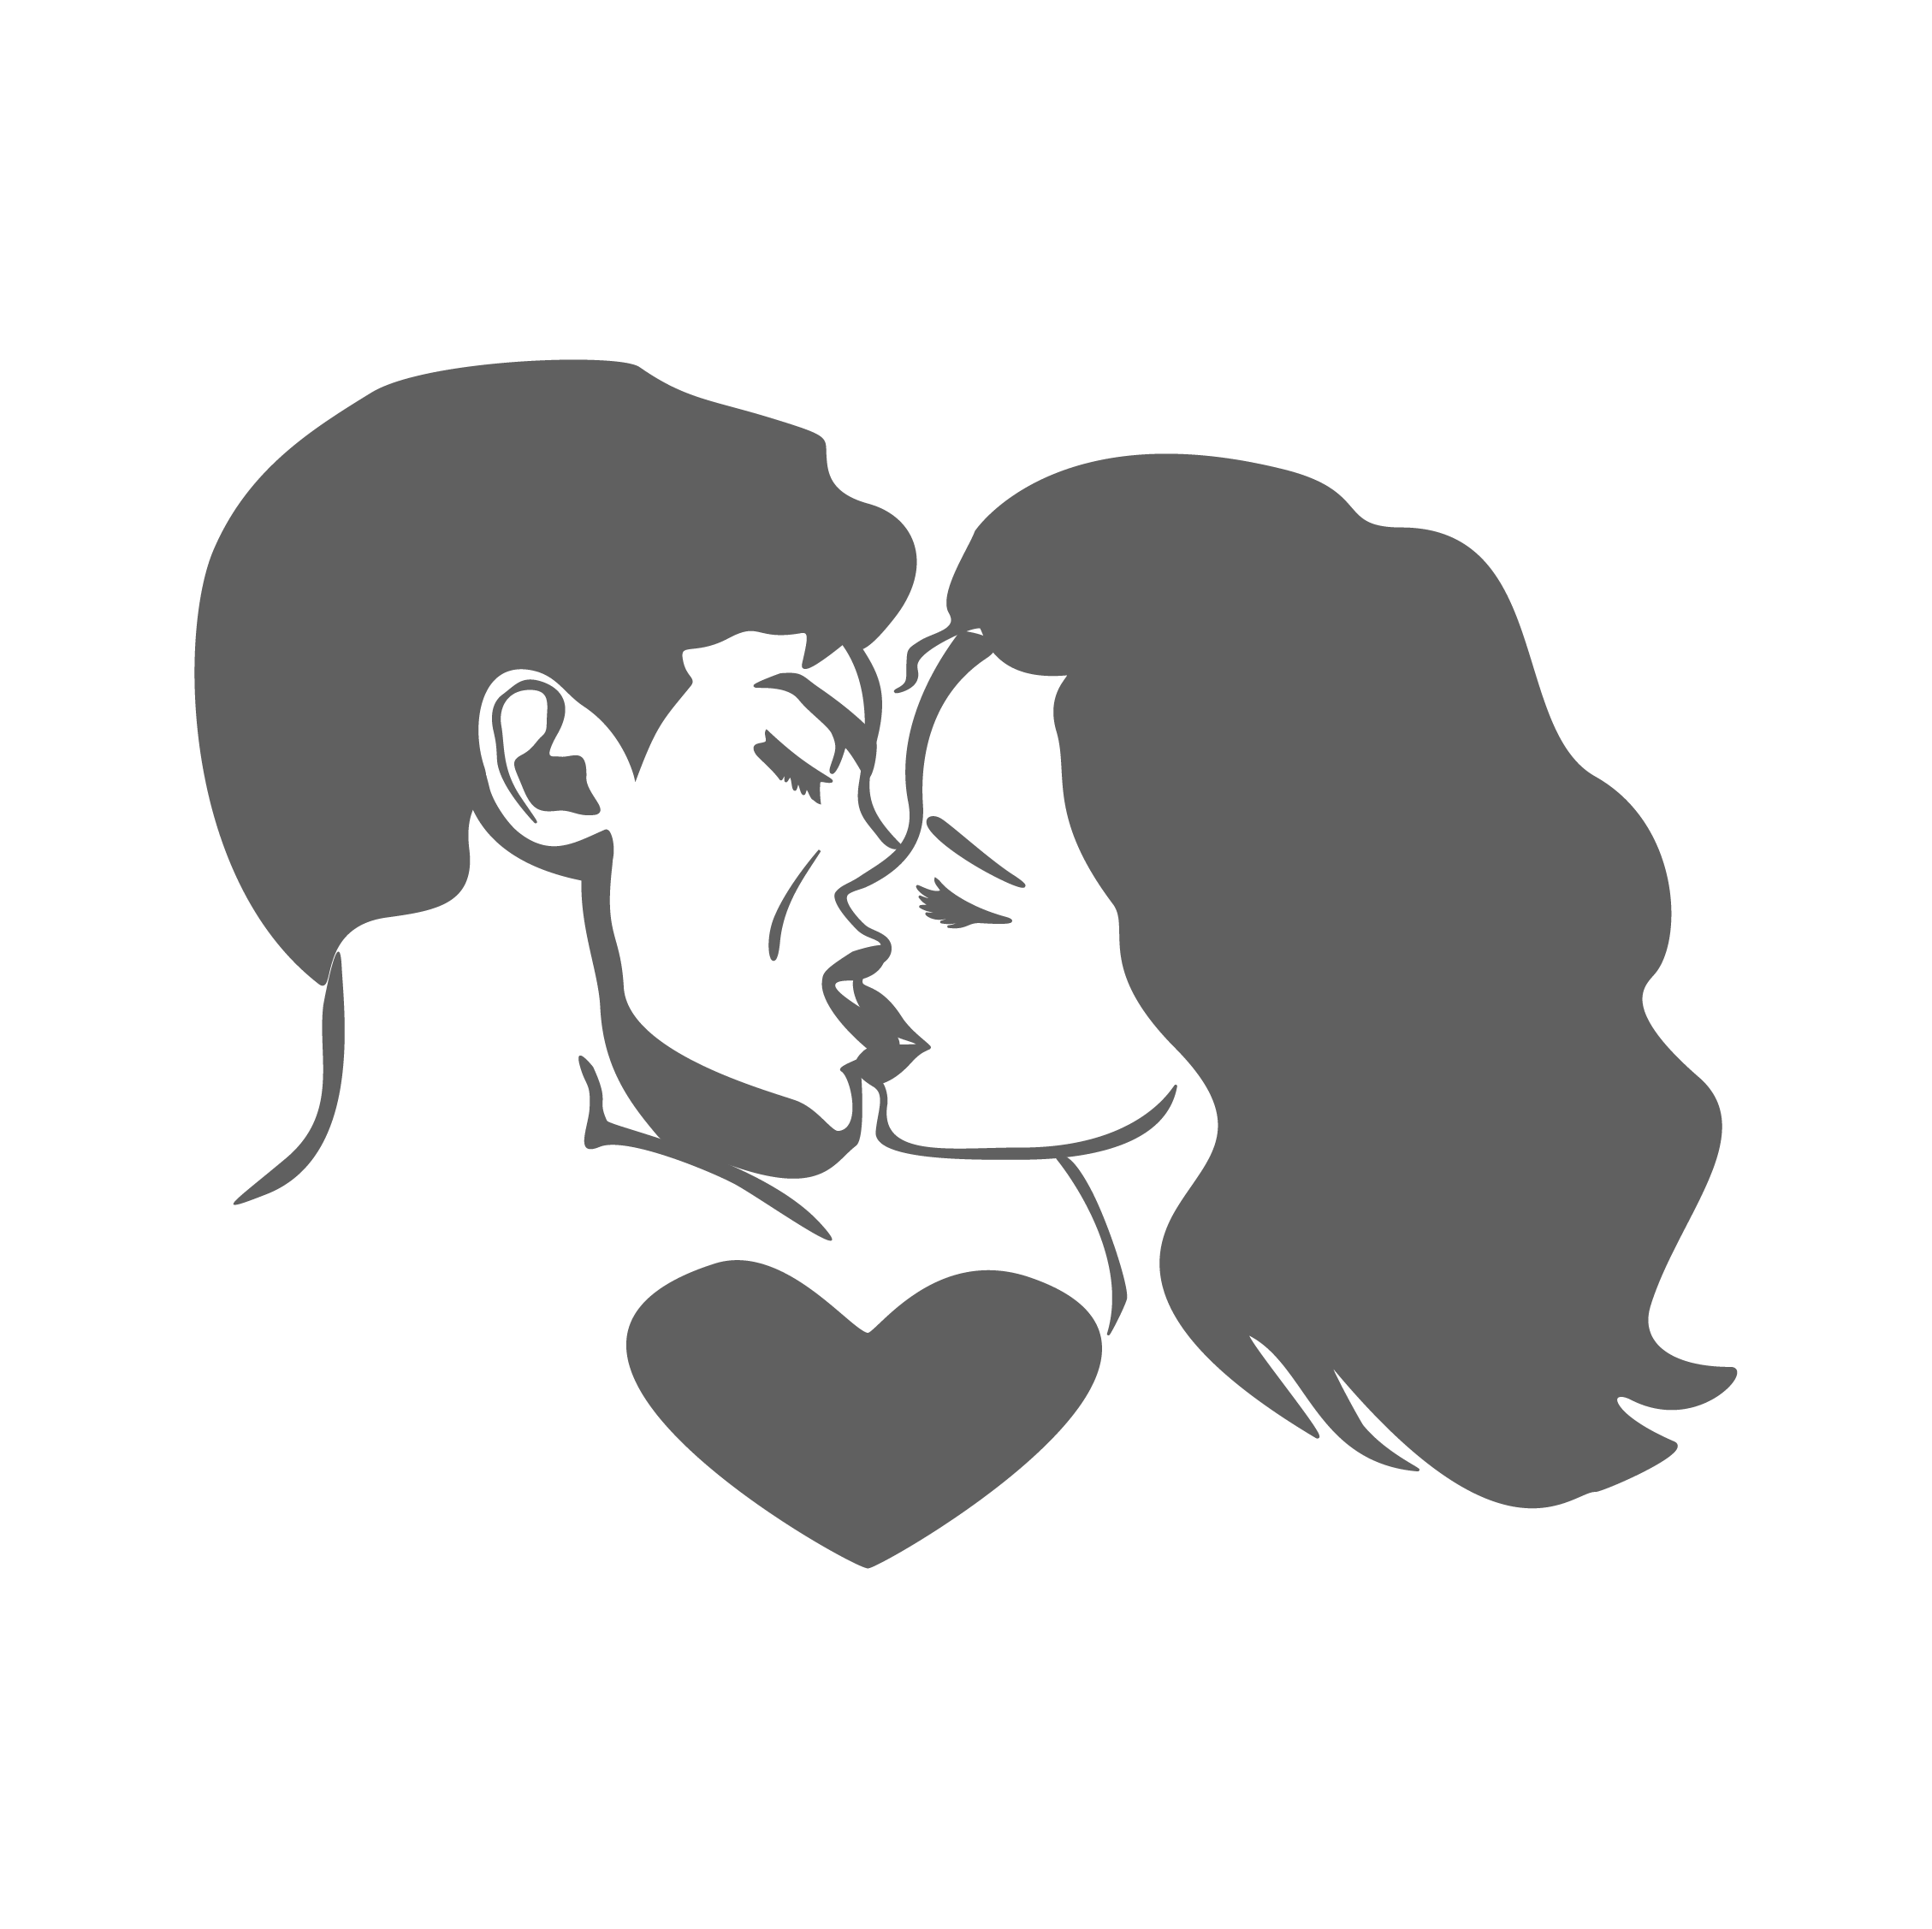 Relationships icon